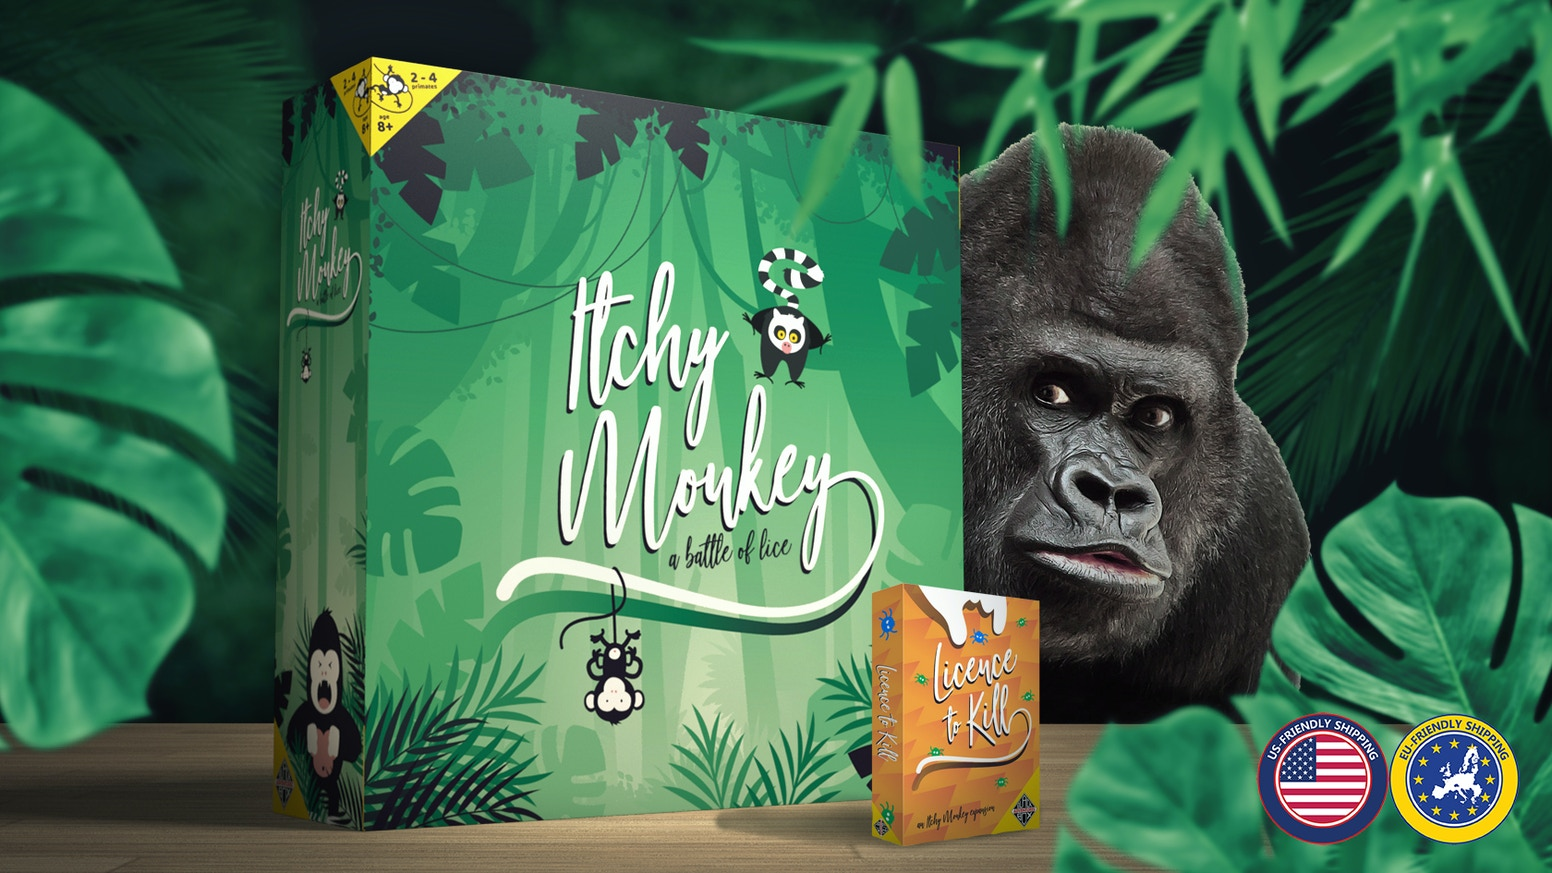 Itchy Monkey: Spawn lice, colonize monkeys and become the real king of the jungle. An easy game to learn, but a hard one to master!